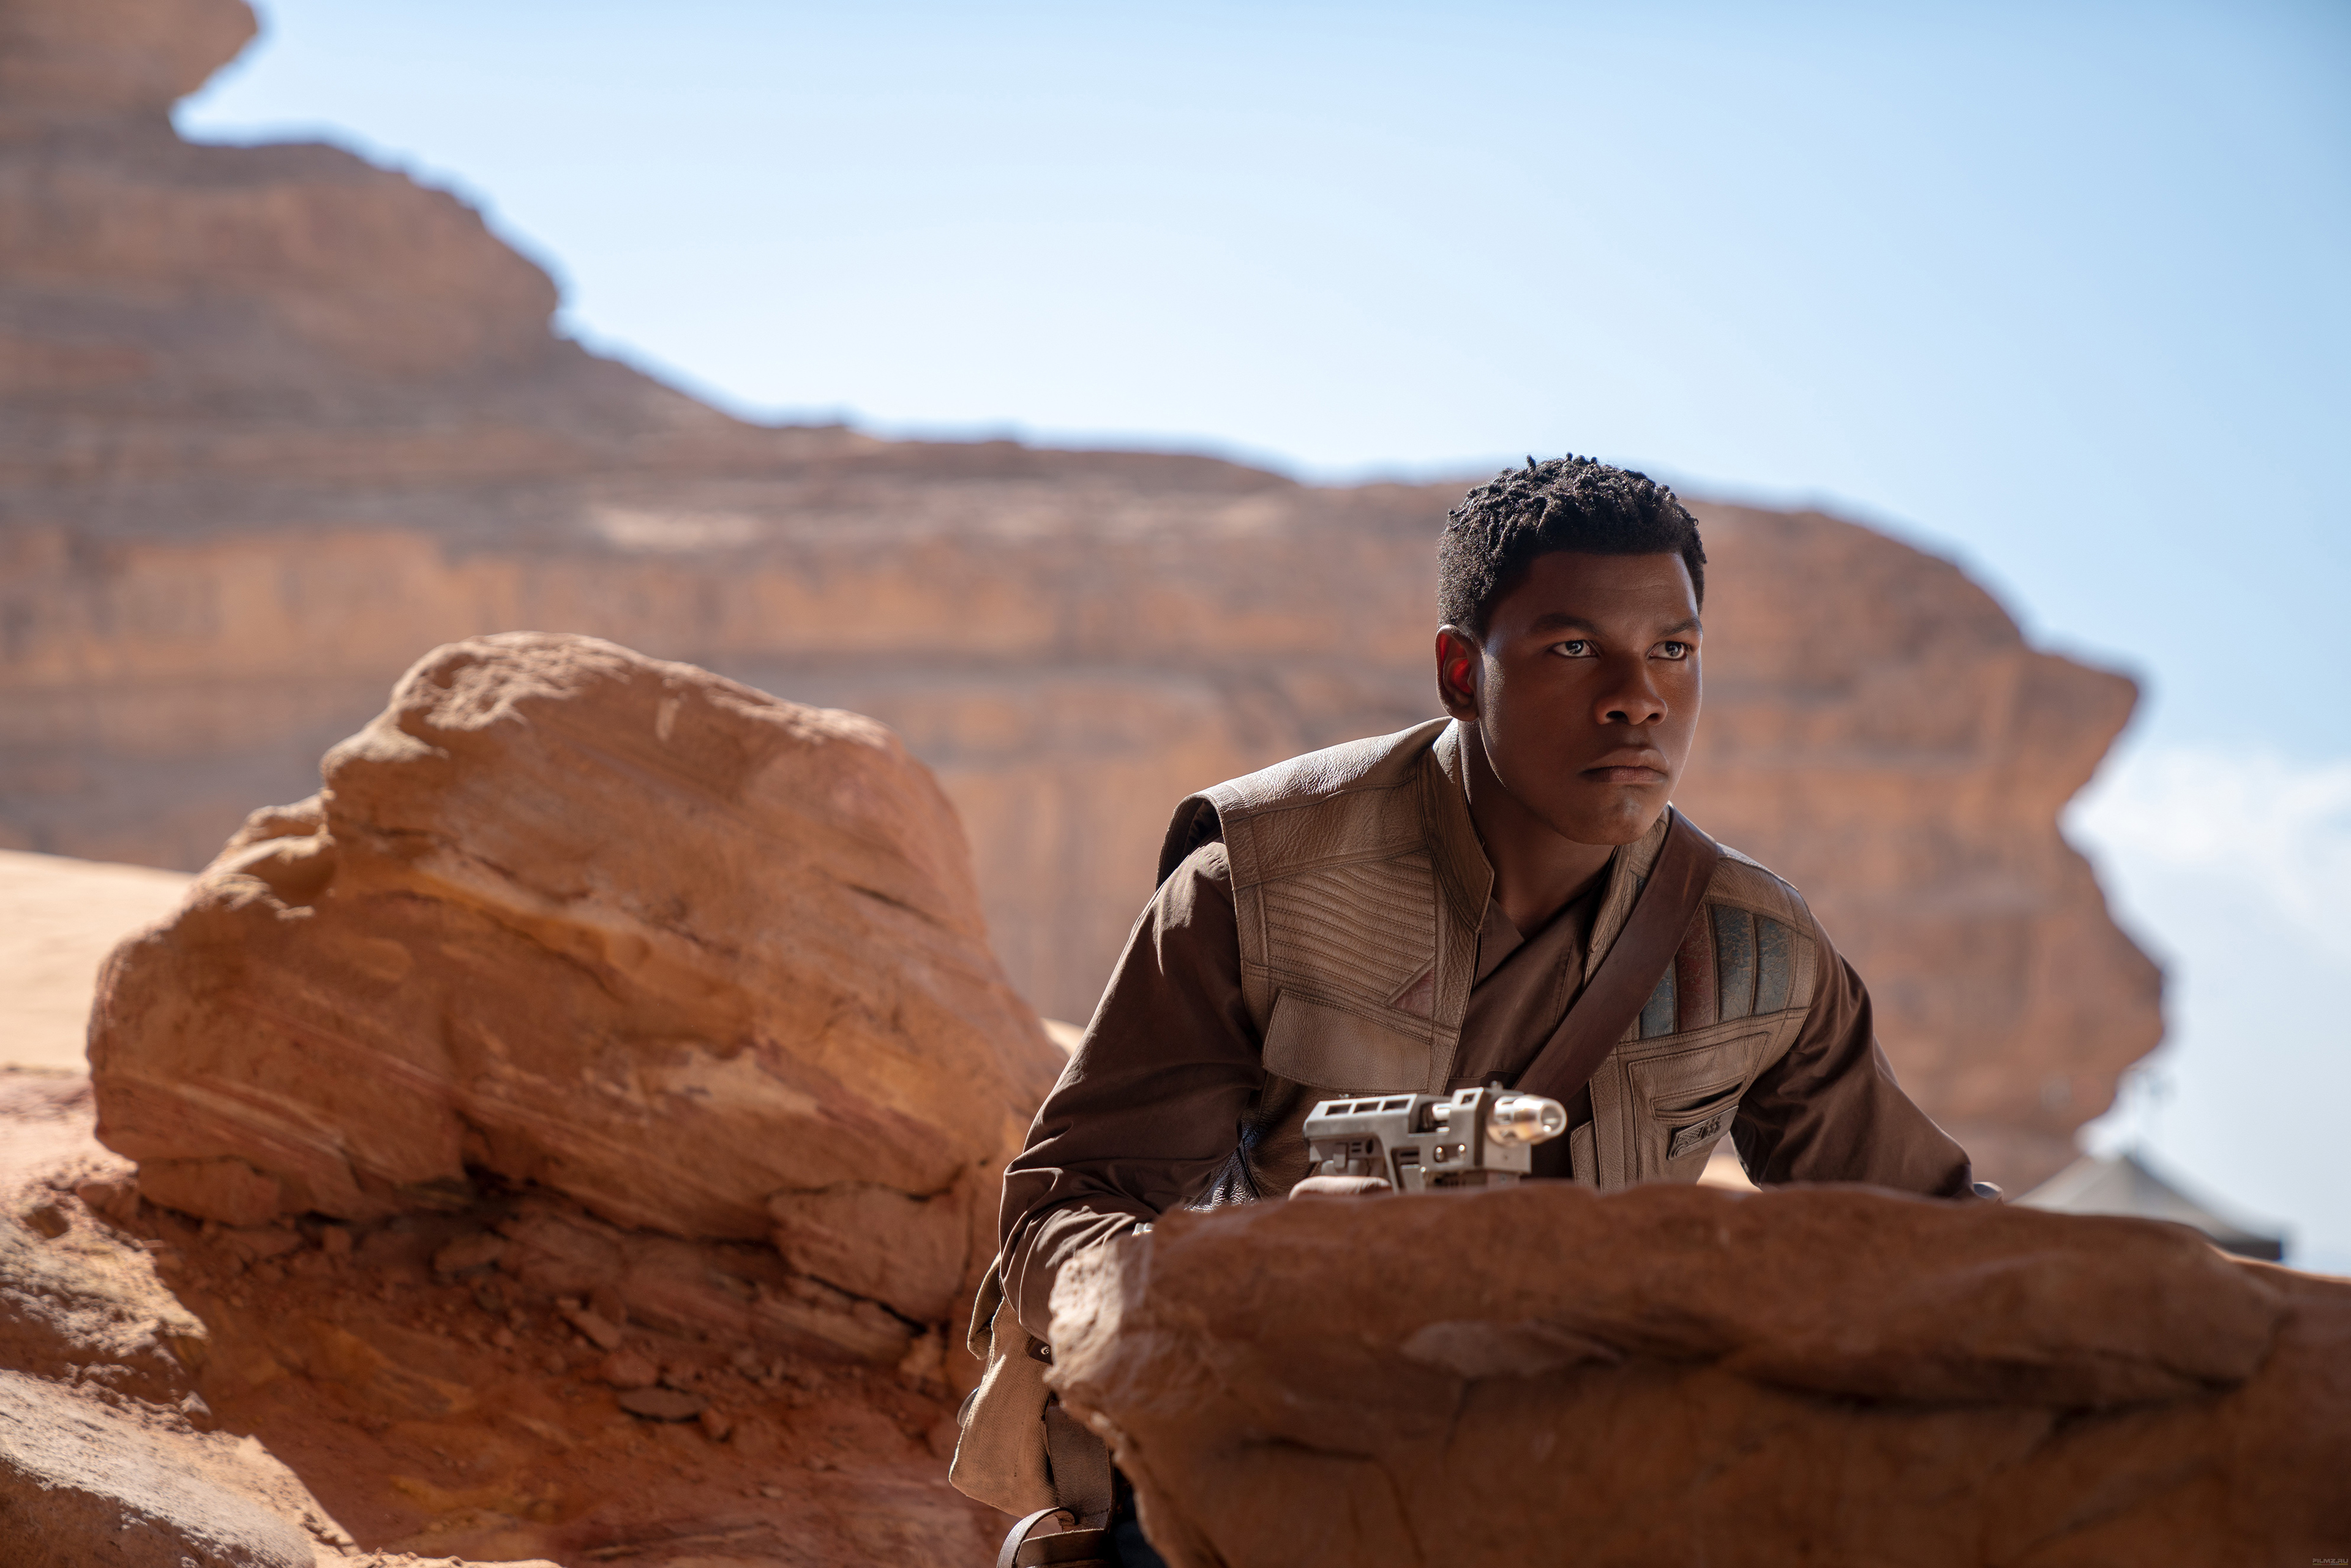 2560x1440 Finn In Star Wars 1440p Resolution Wallpaper Hd Movies 4k Wallpapers Images Photos And Background